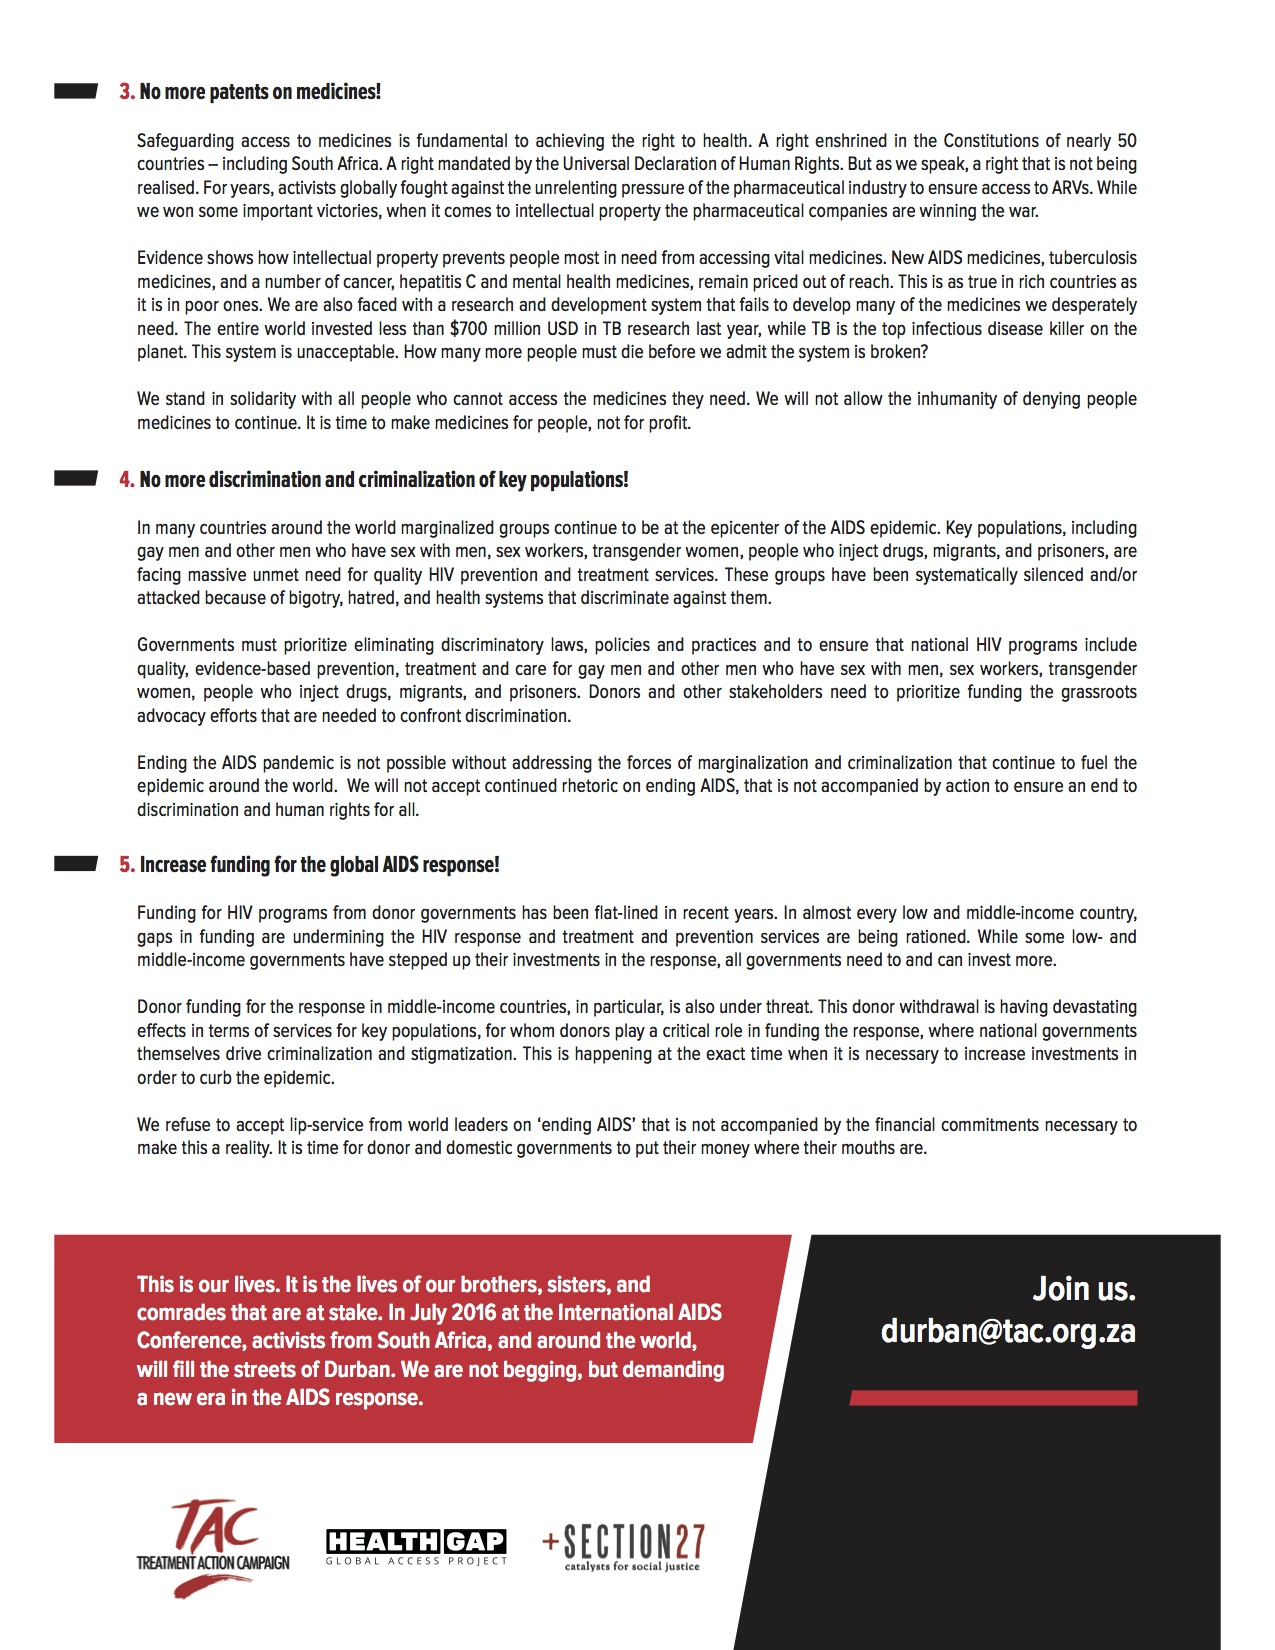 Health_GAP-S27-TAC_Durban_Call_to_Action_Final_2016.06.14_(Page_2).jpg